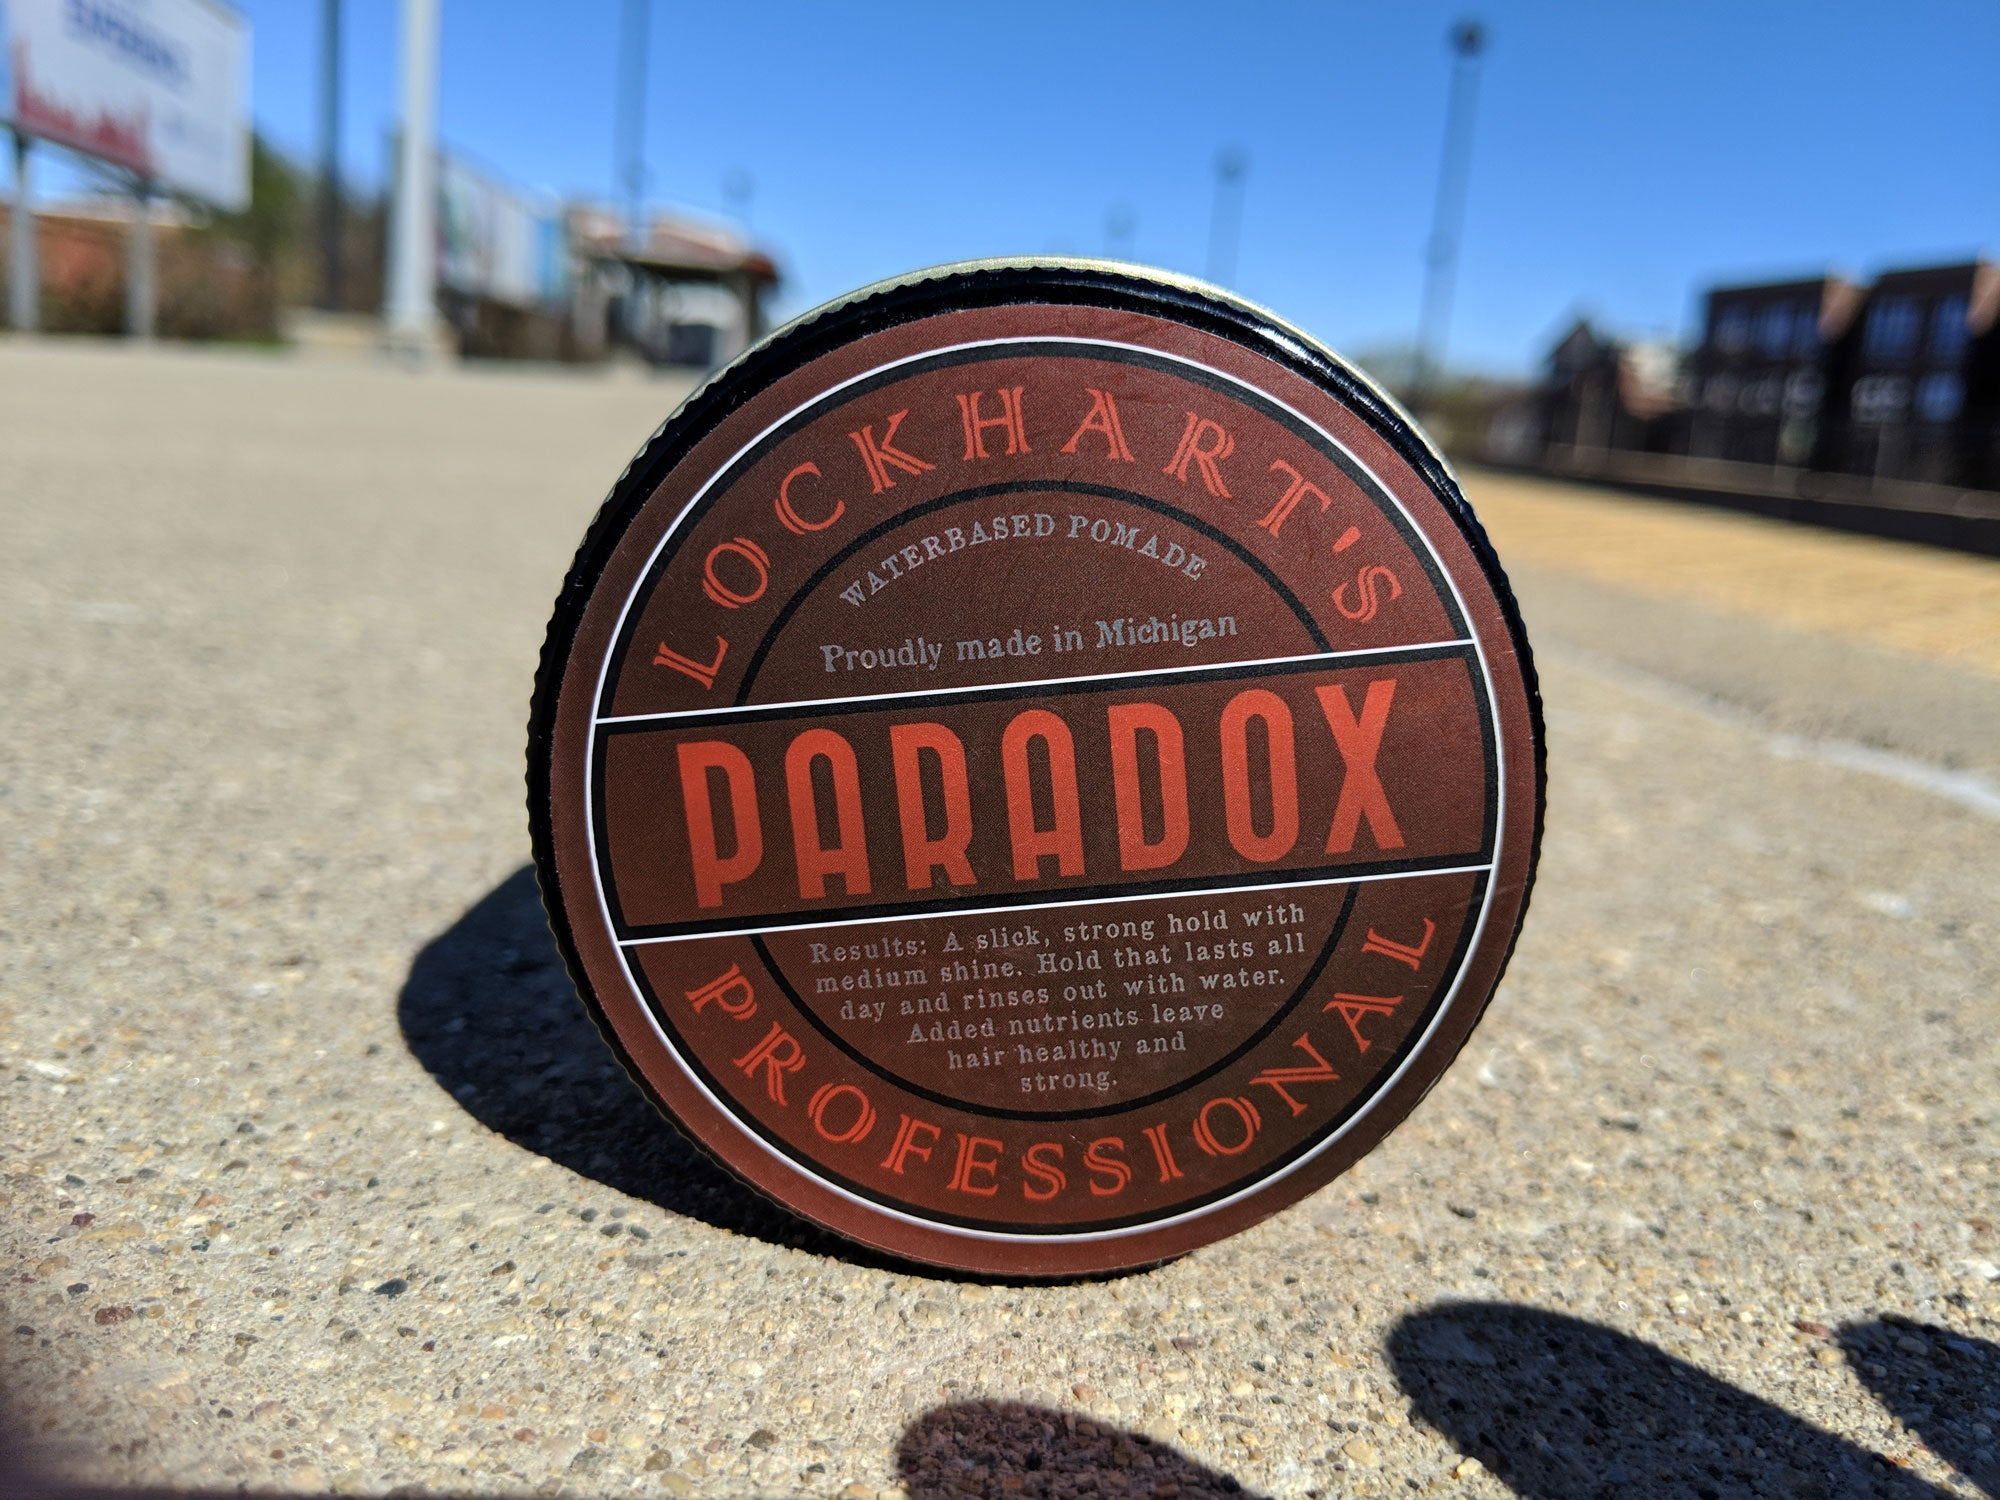 Paradox water based pomade on a train track.